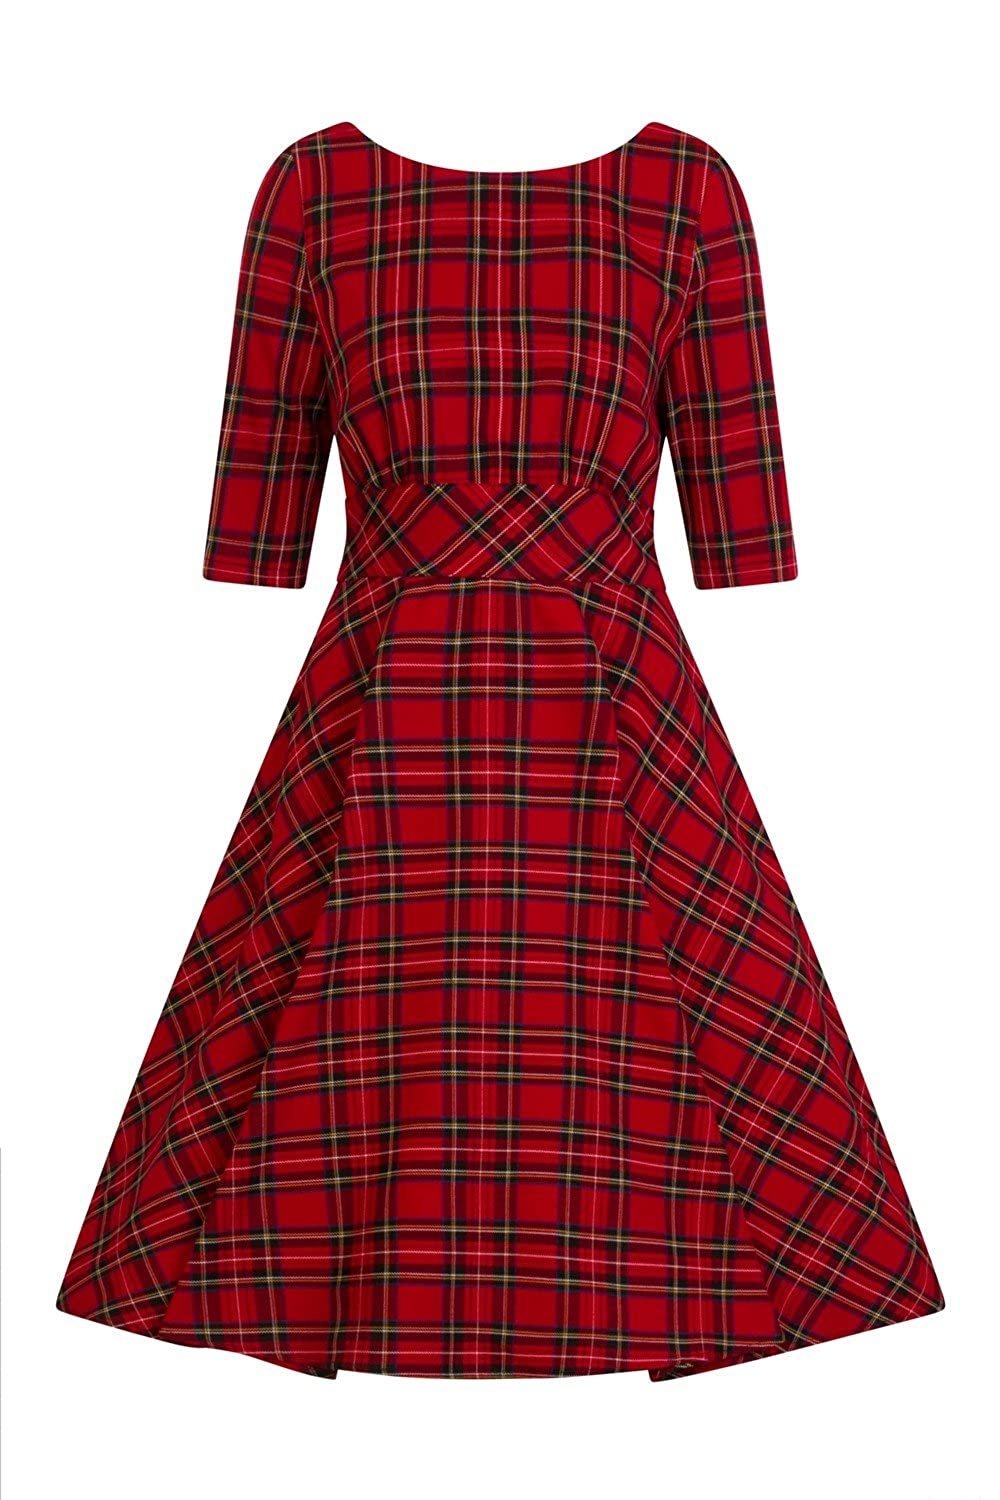 60s Dresses | 1960s Dresses Mod, Mini, Hippie Hell Bunny Irvine Tartan 1950s Vintage Retro Dress XS-4XL $72.99 AT vintagedancer.com